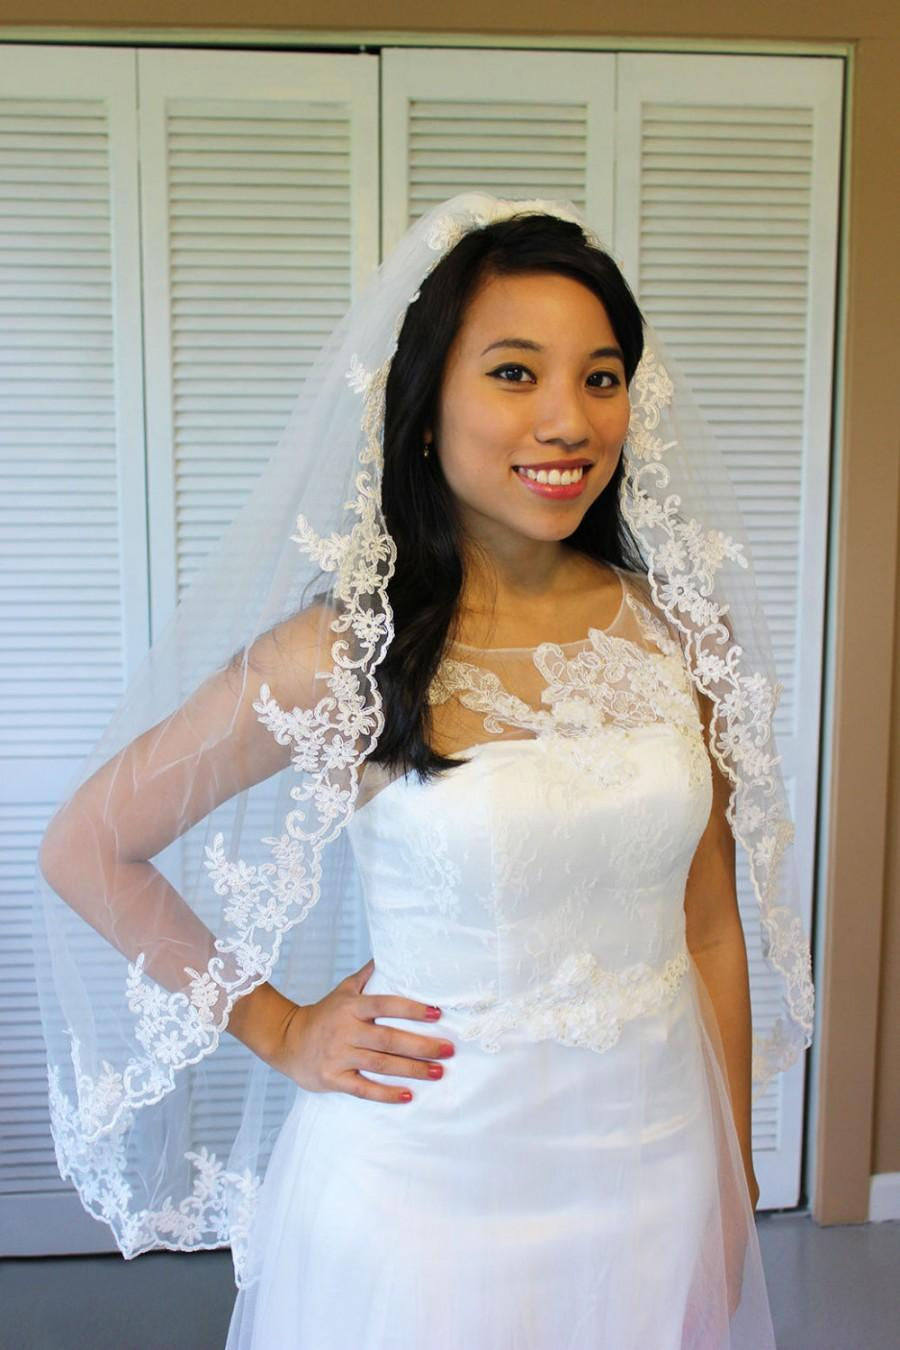 Nozze - Lace elbow length wedding veil, diamond white, one tier, cheap, fingertip length with attached comb